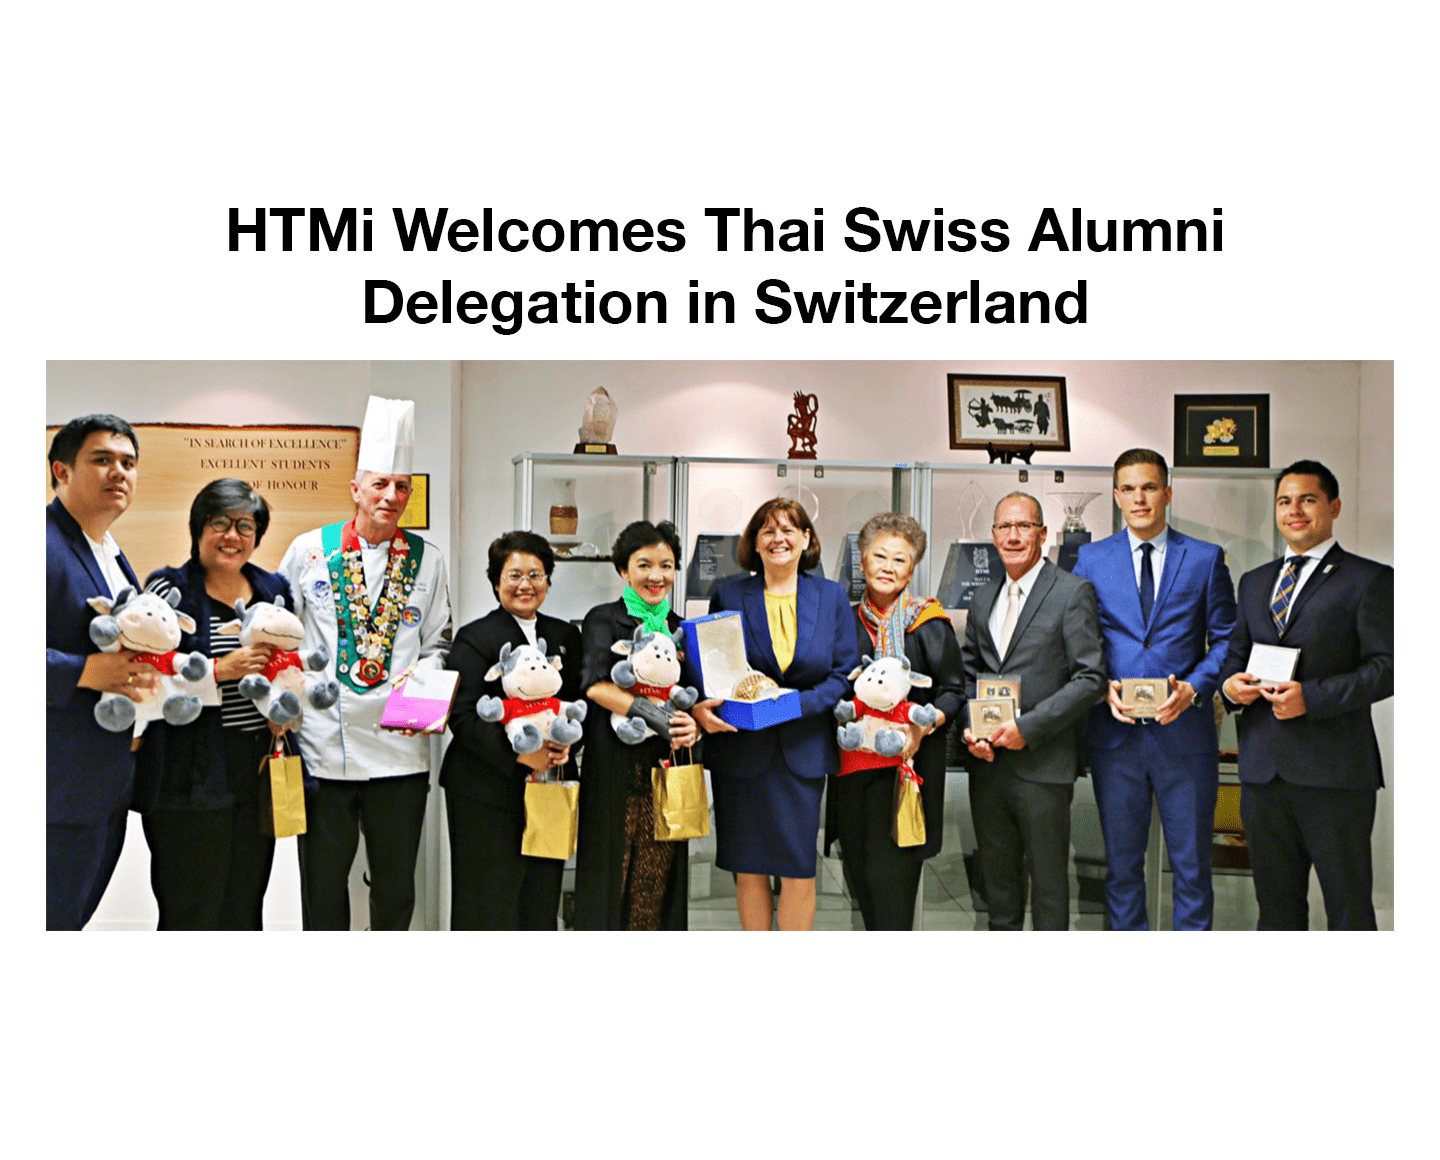 HTMi Welcomes Thai Swiss Alumni Delegation in Switzerland